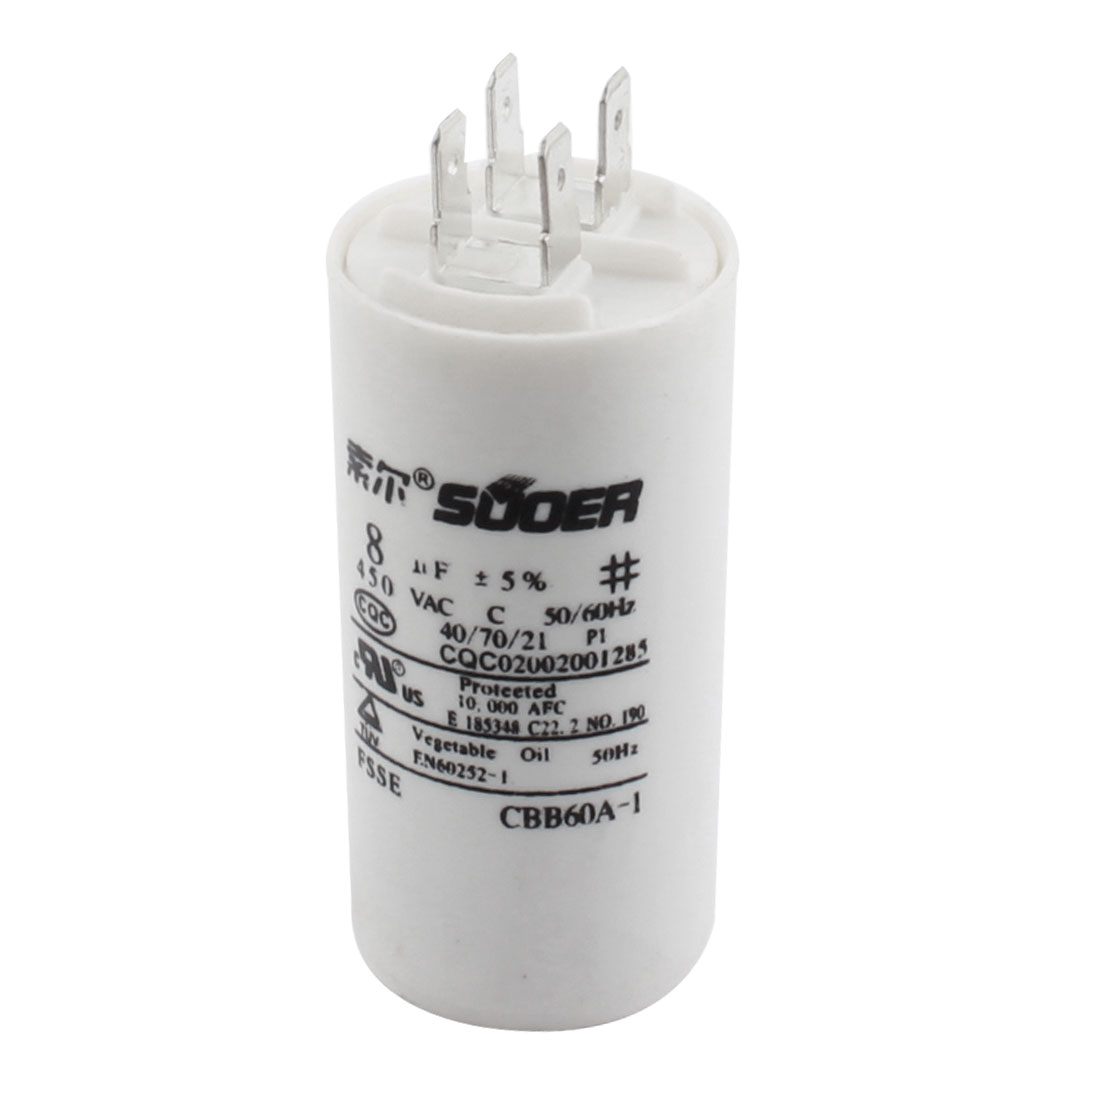 AC450V 8uF 5% Tolerance Lug Terminals Cylinder Polypropylene Film Motor Running Capacitor White for Washing Machine